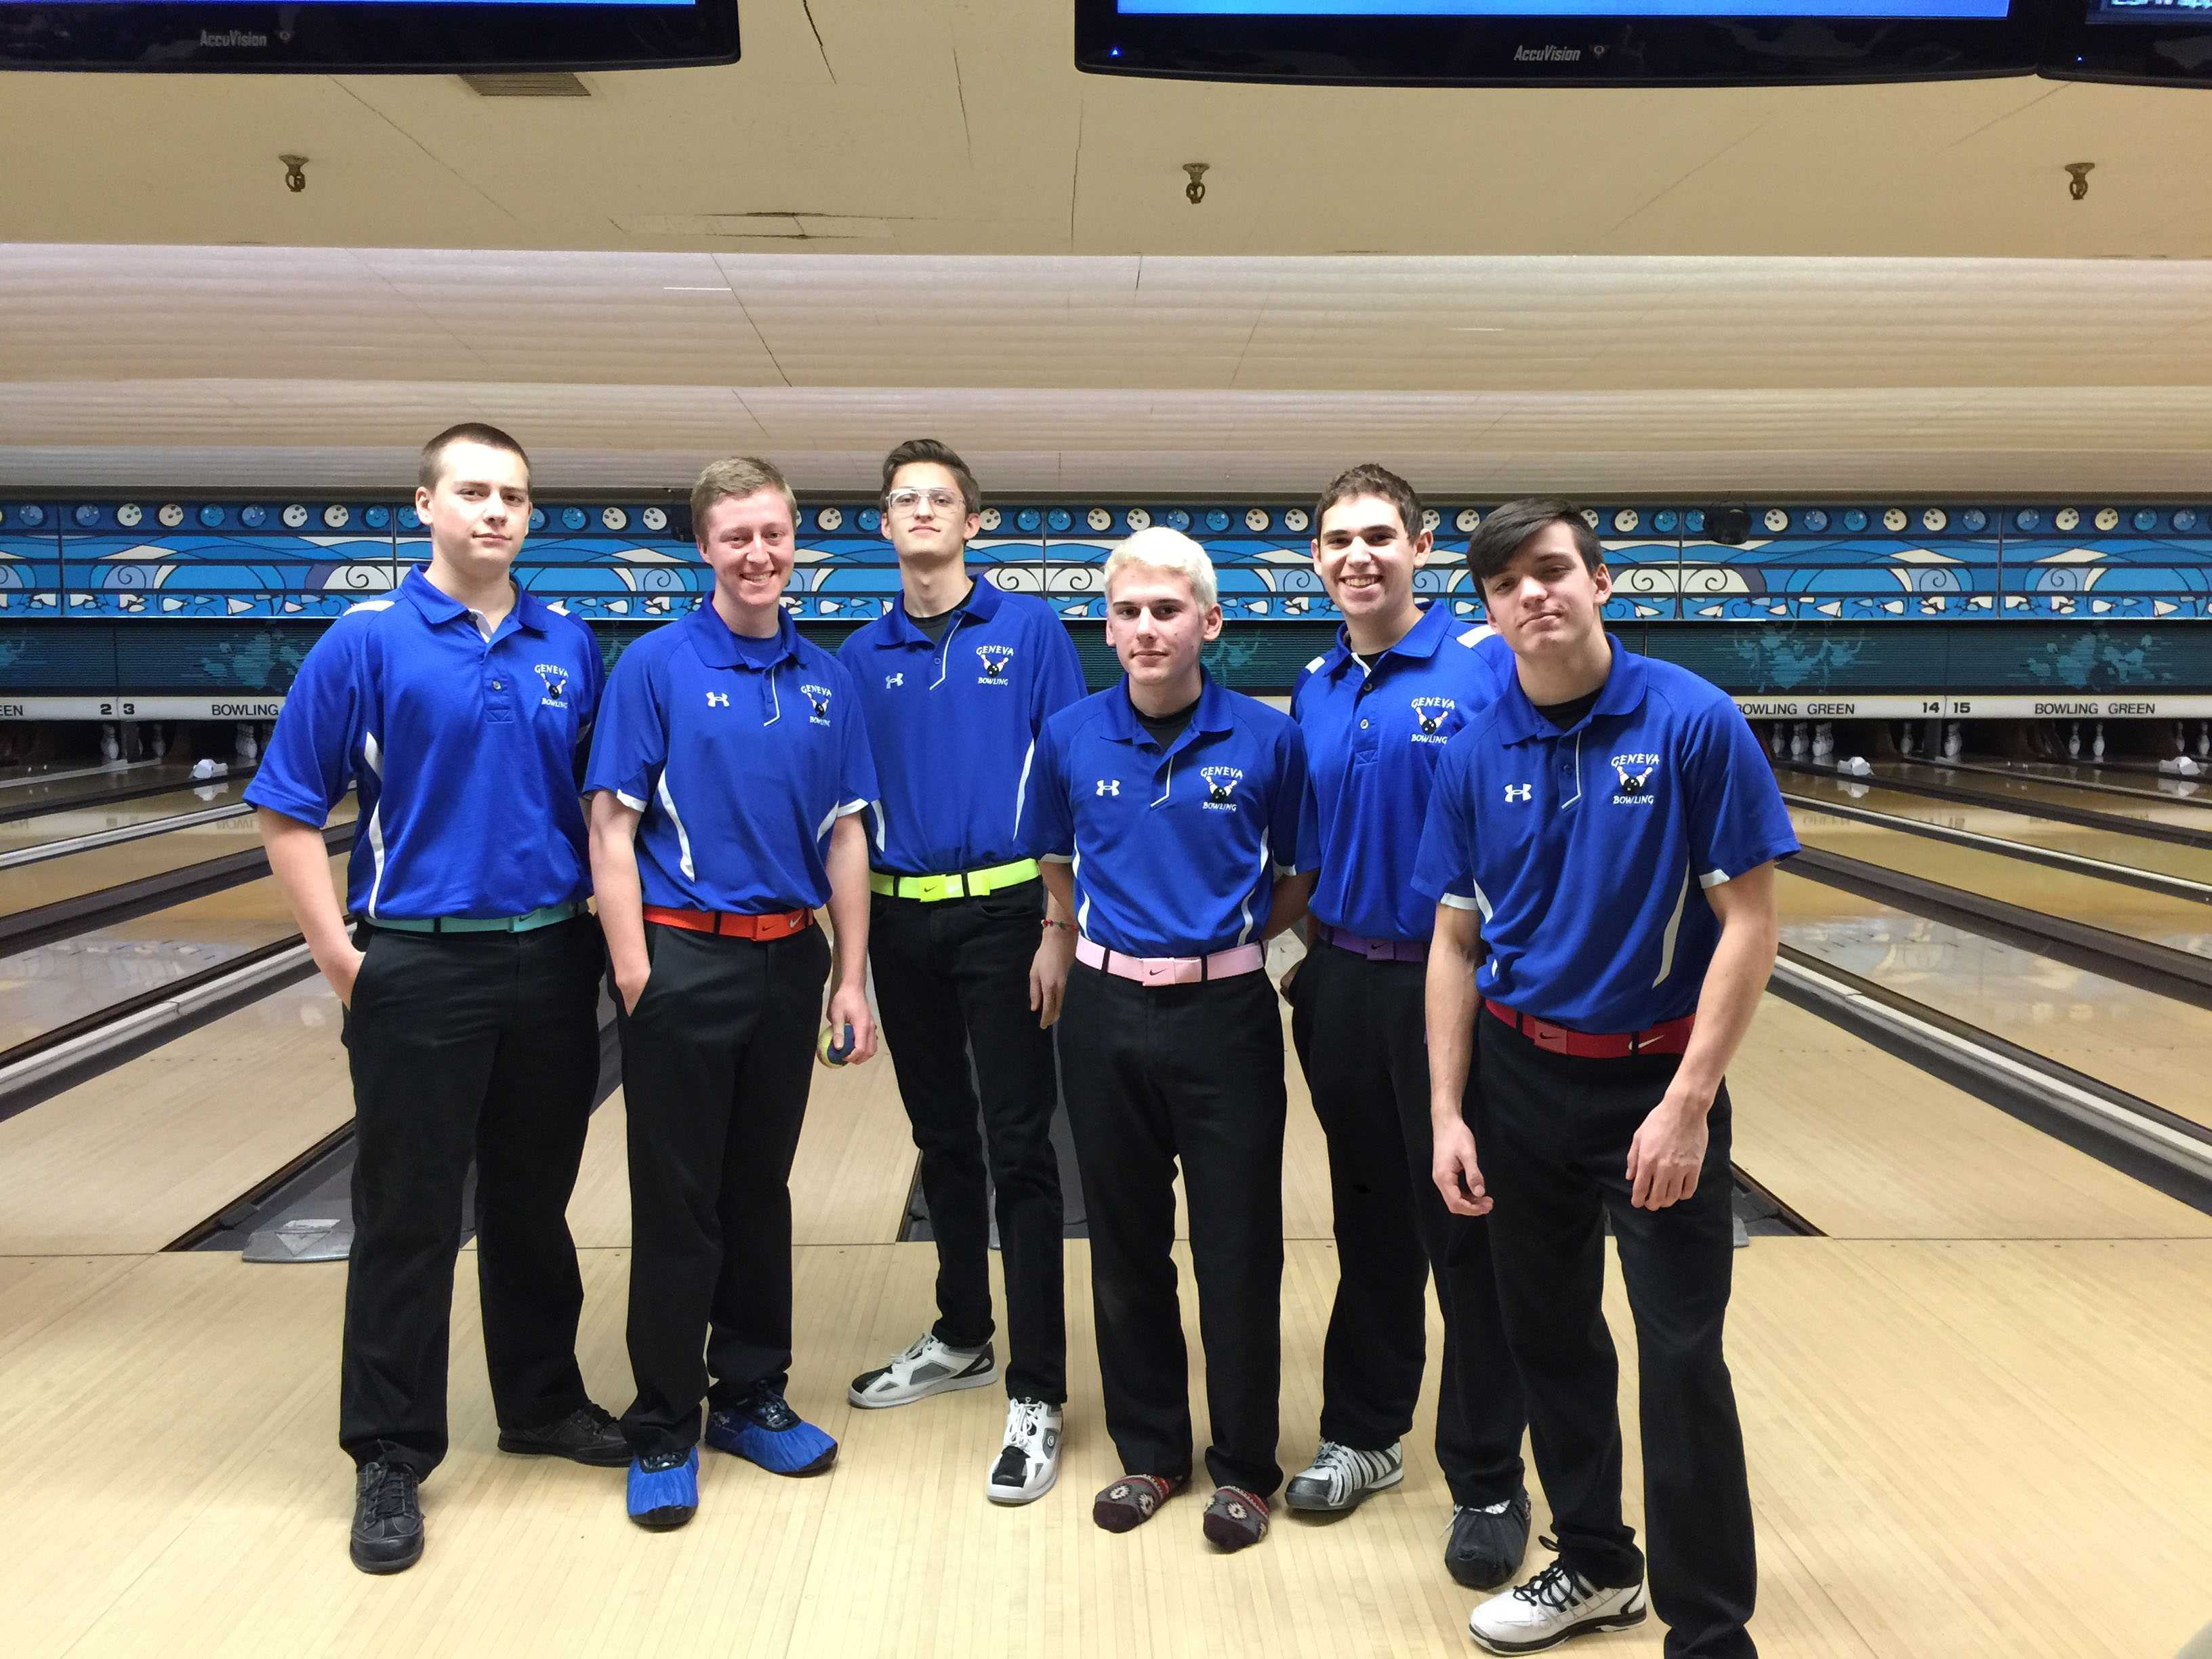 Geneva Boys Bowling team poses and reflects on a successful season.